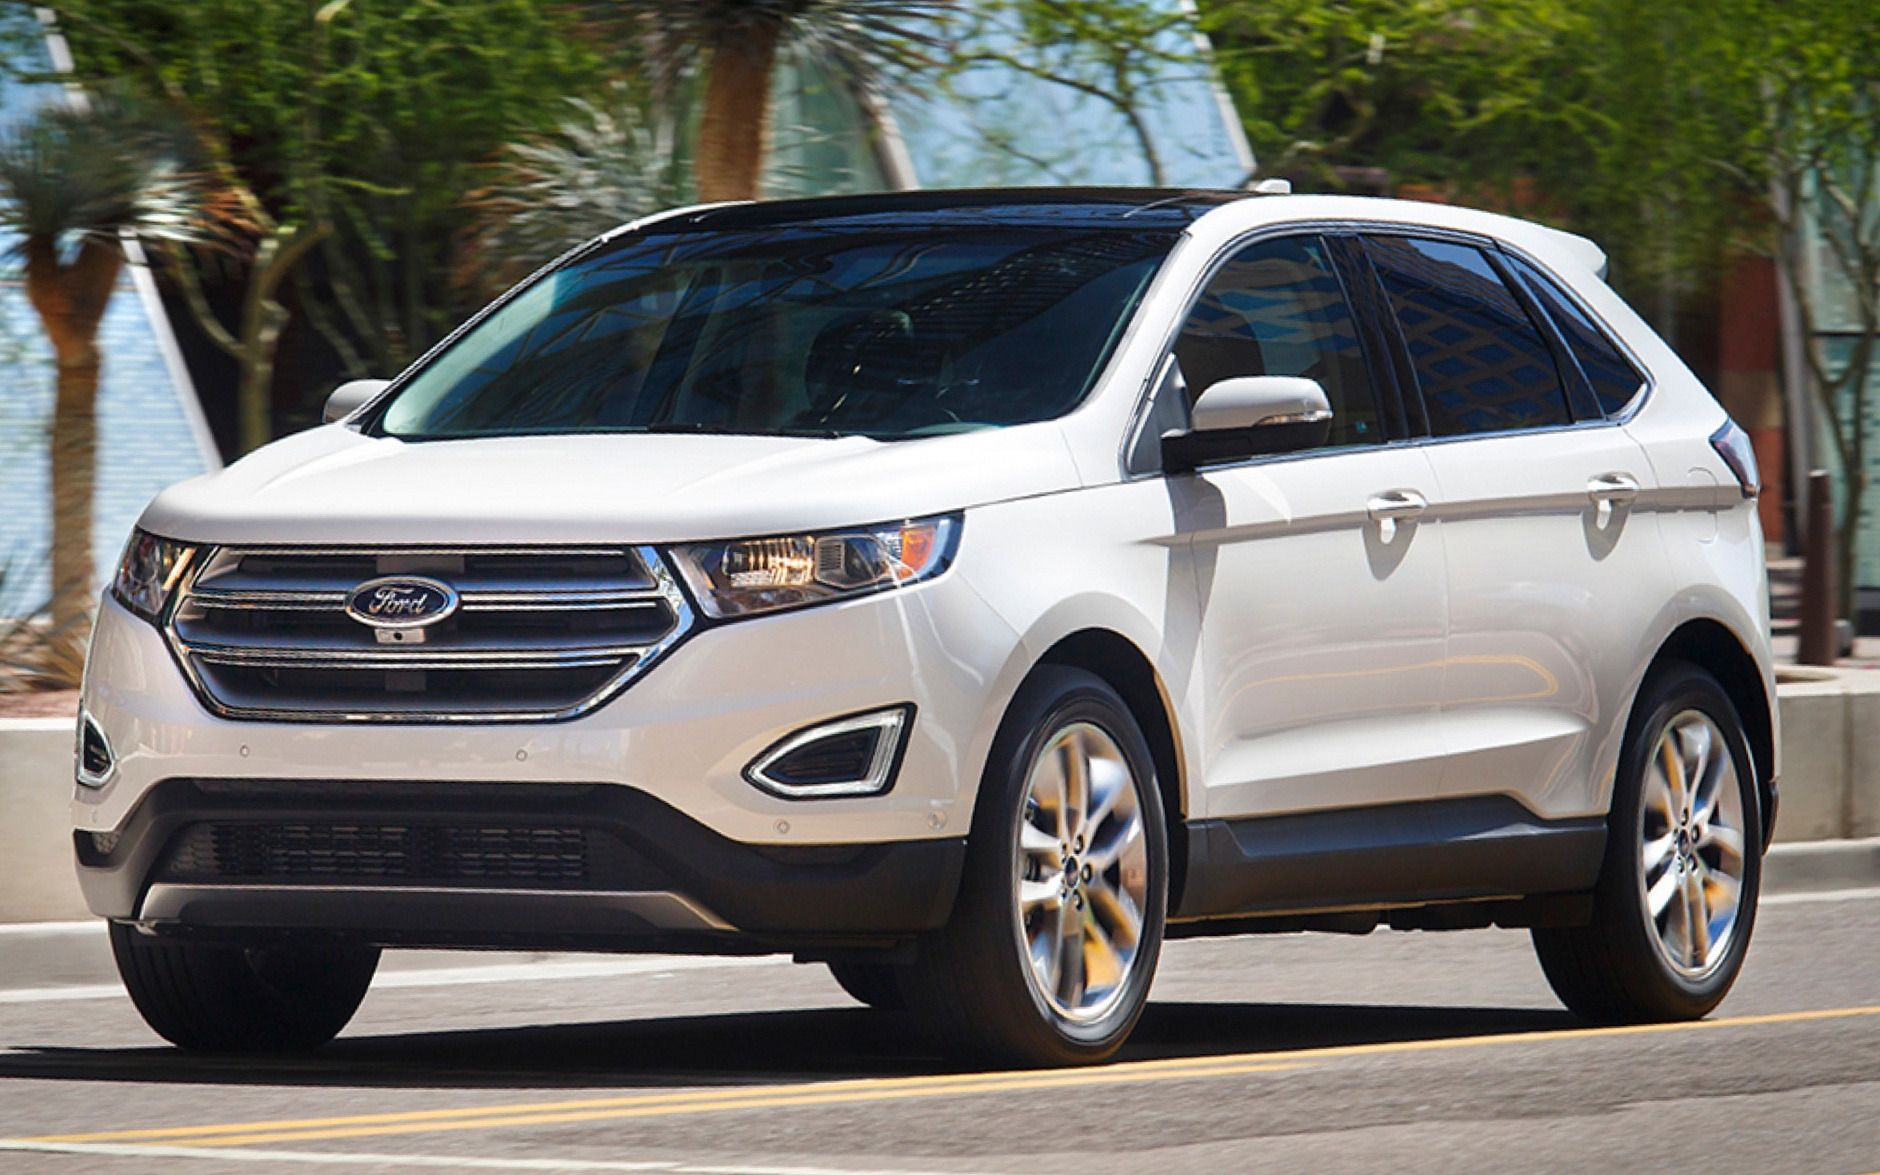 2016 ford edge ford suv models ford edge accessories ford edge limited